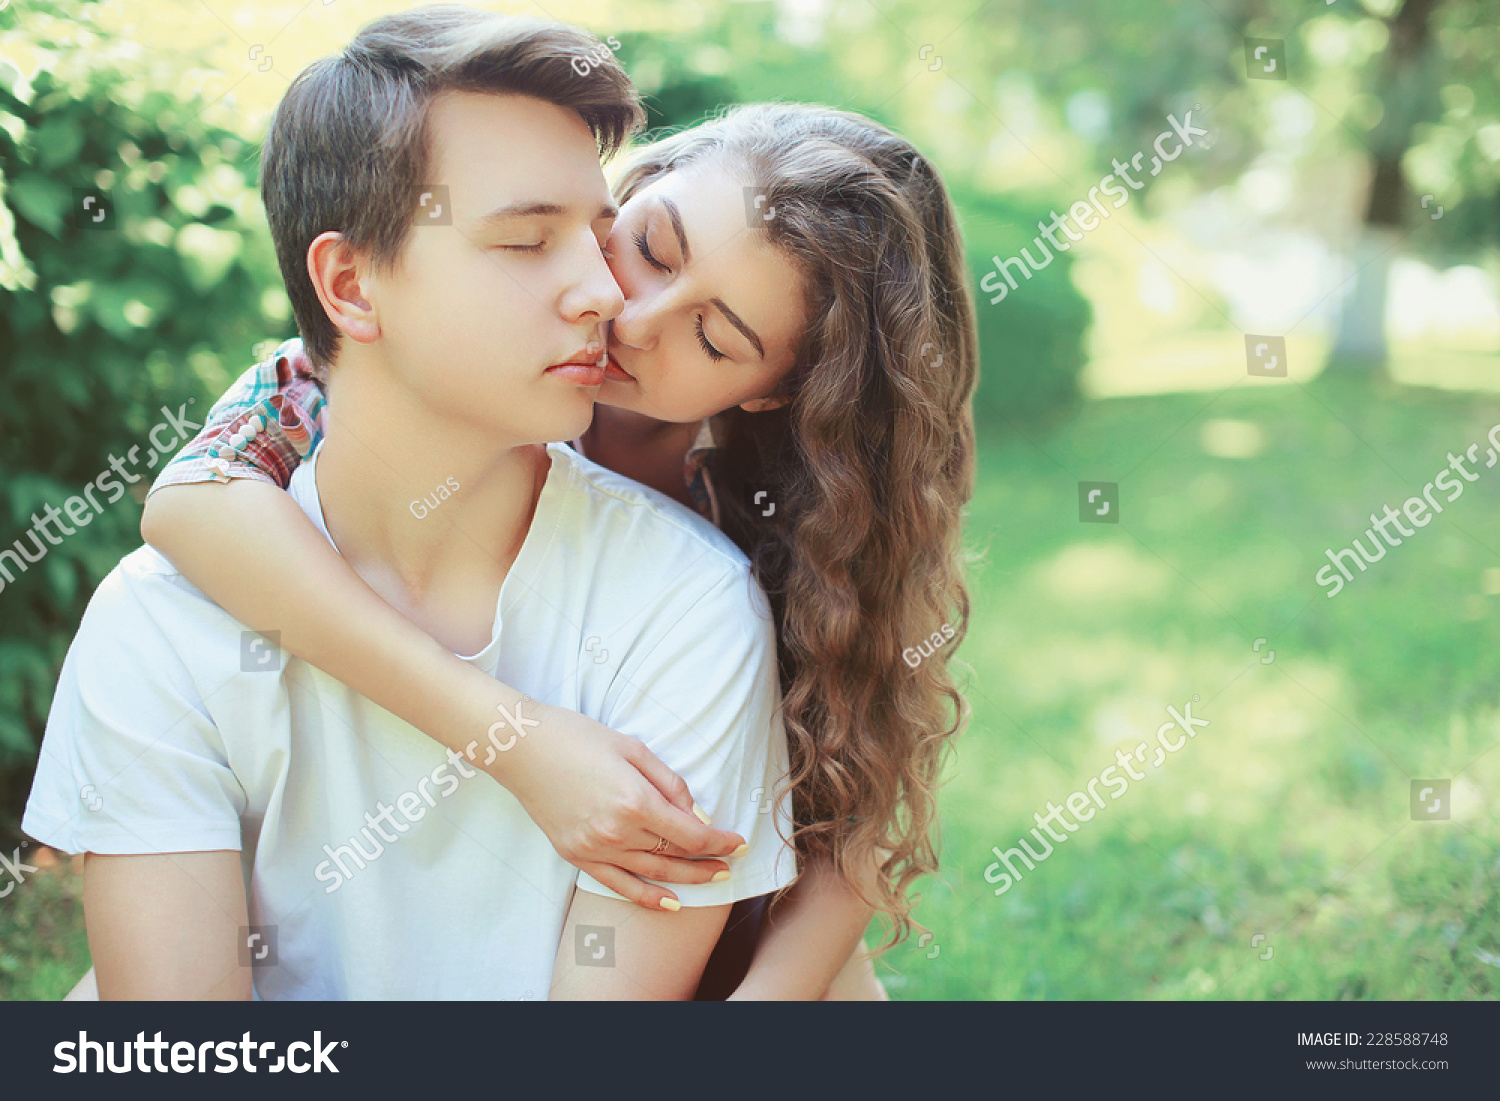 lovely young couple teenagers love kiss stock photo edit now